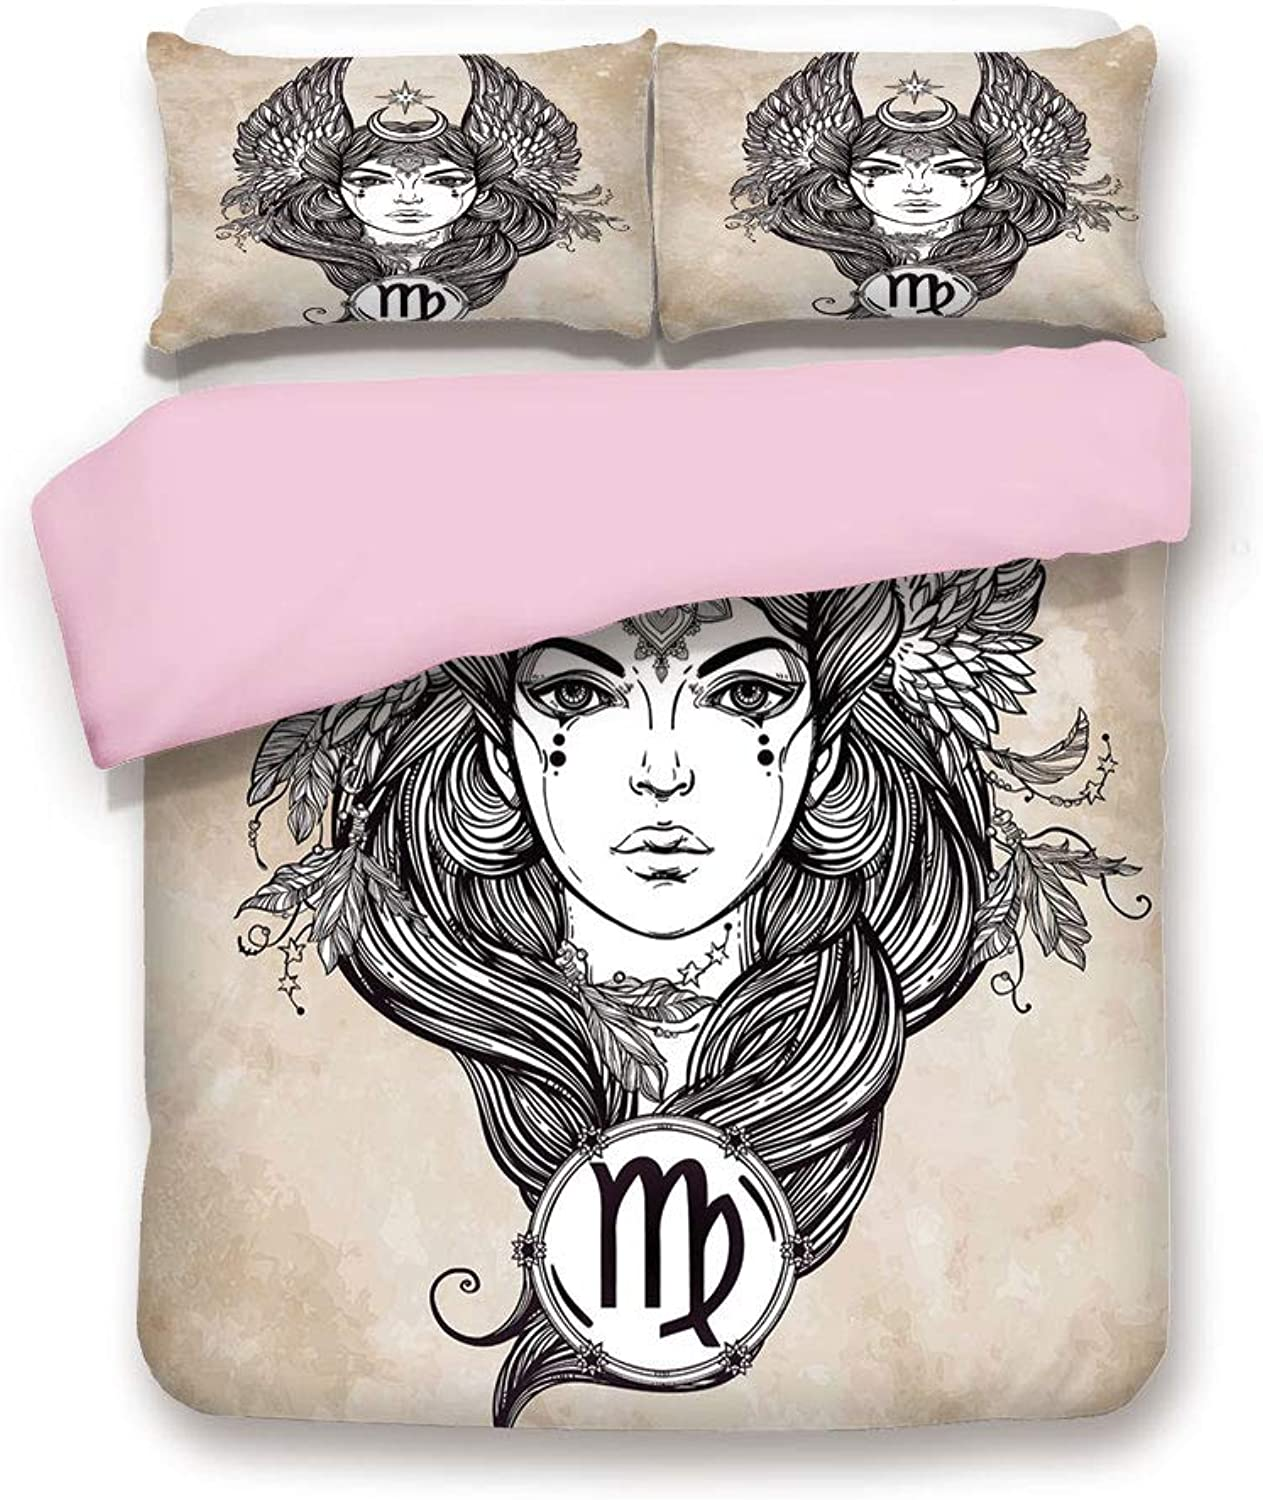 IPrint Pink Duvet Cover Set,Full Size,Astrological Icon with